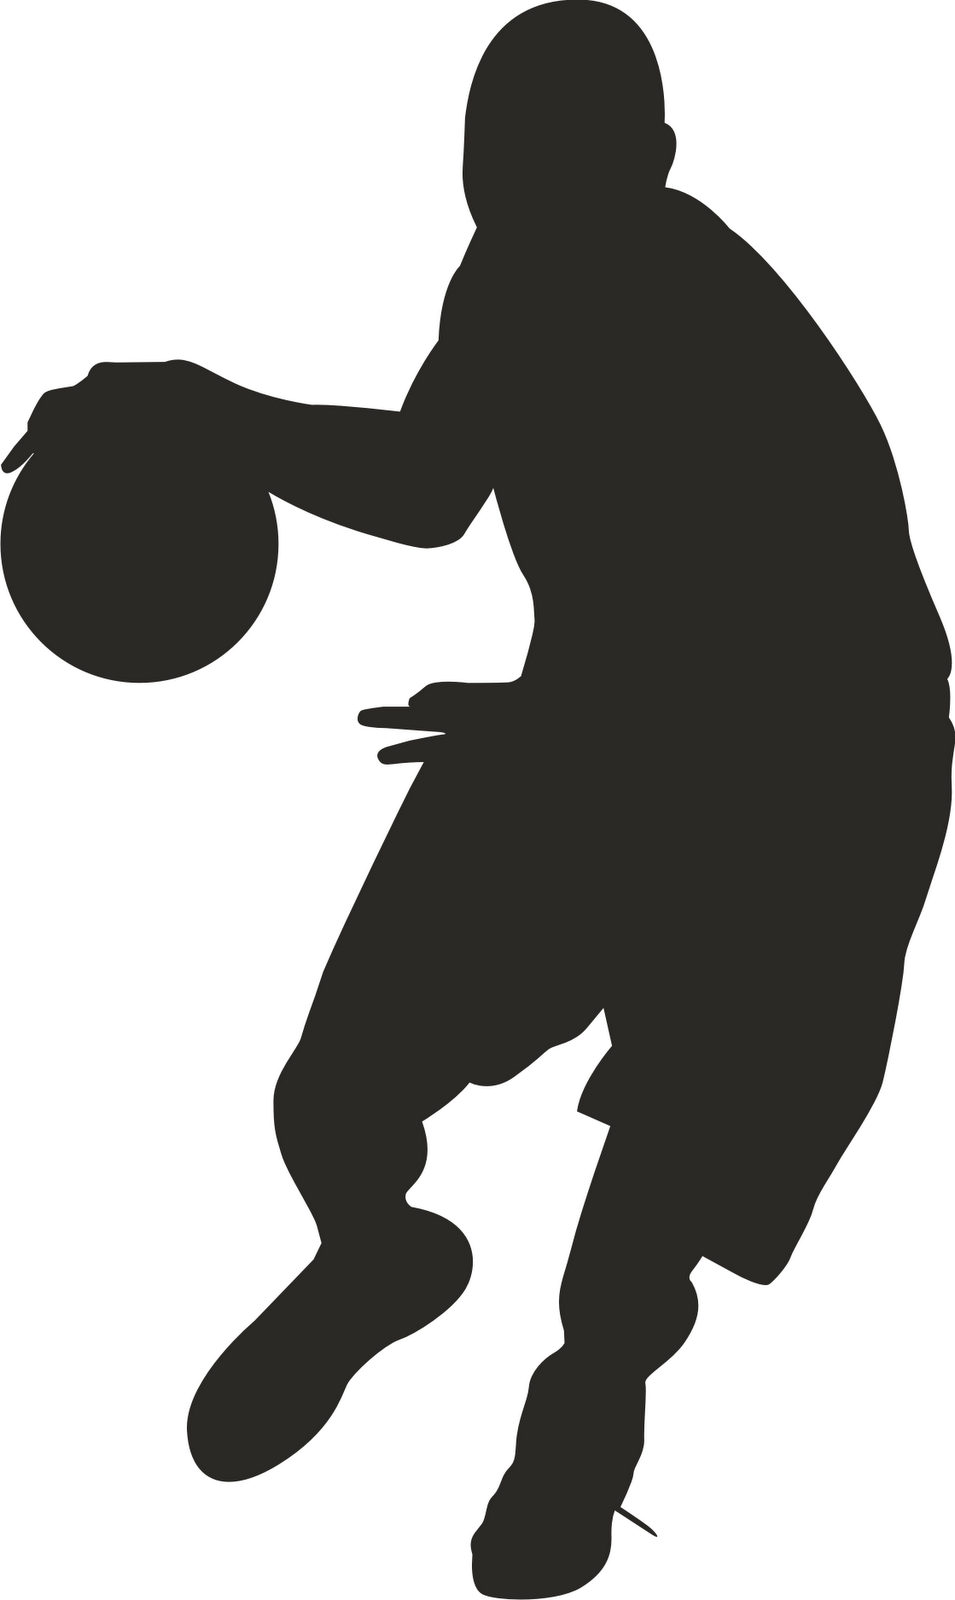 Animated Basketball Hoop Clipart